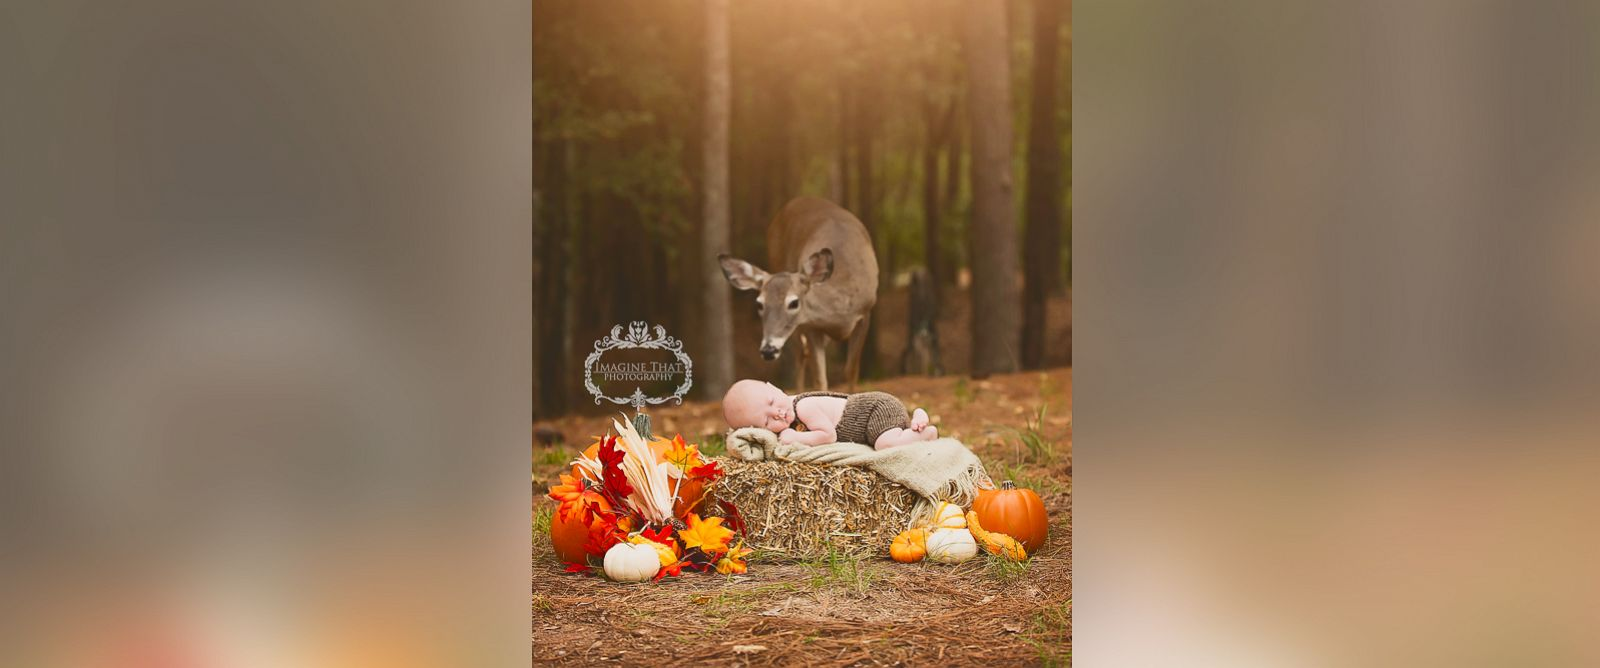 PHOTO: Megan Rion, owner of Imagine That Photography by Megan Rion, photographed Maggie the deer in an infant shoot on October 20.